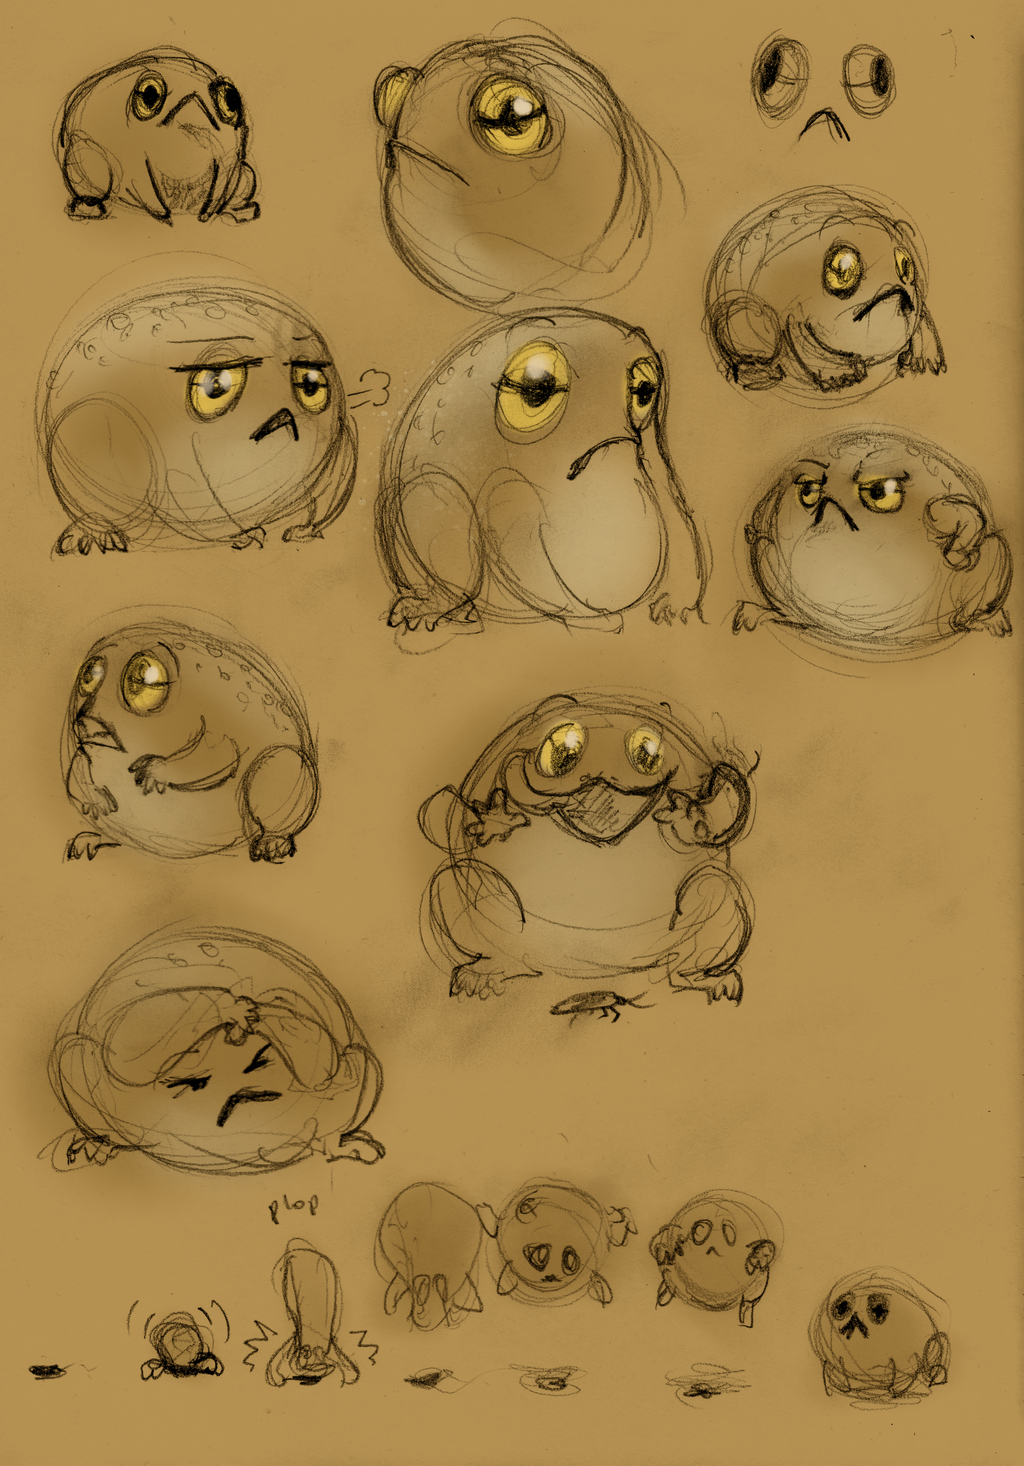 Frog sketches by DigitalCrest